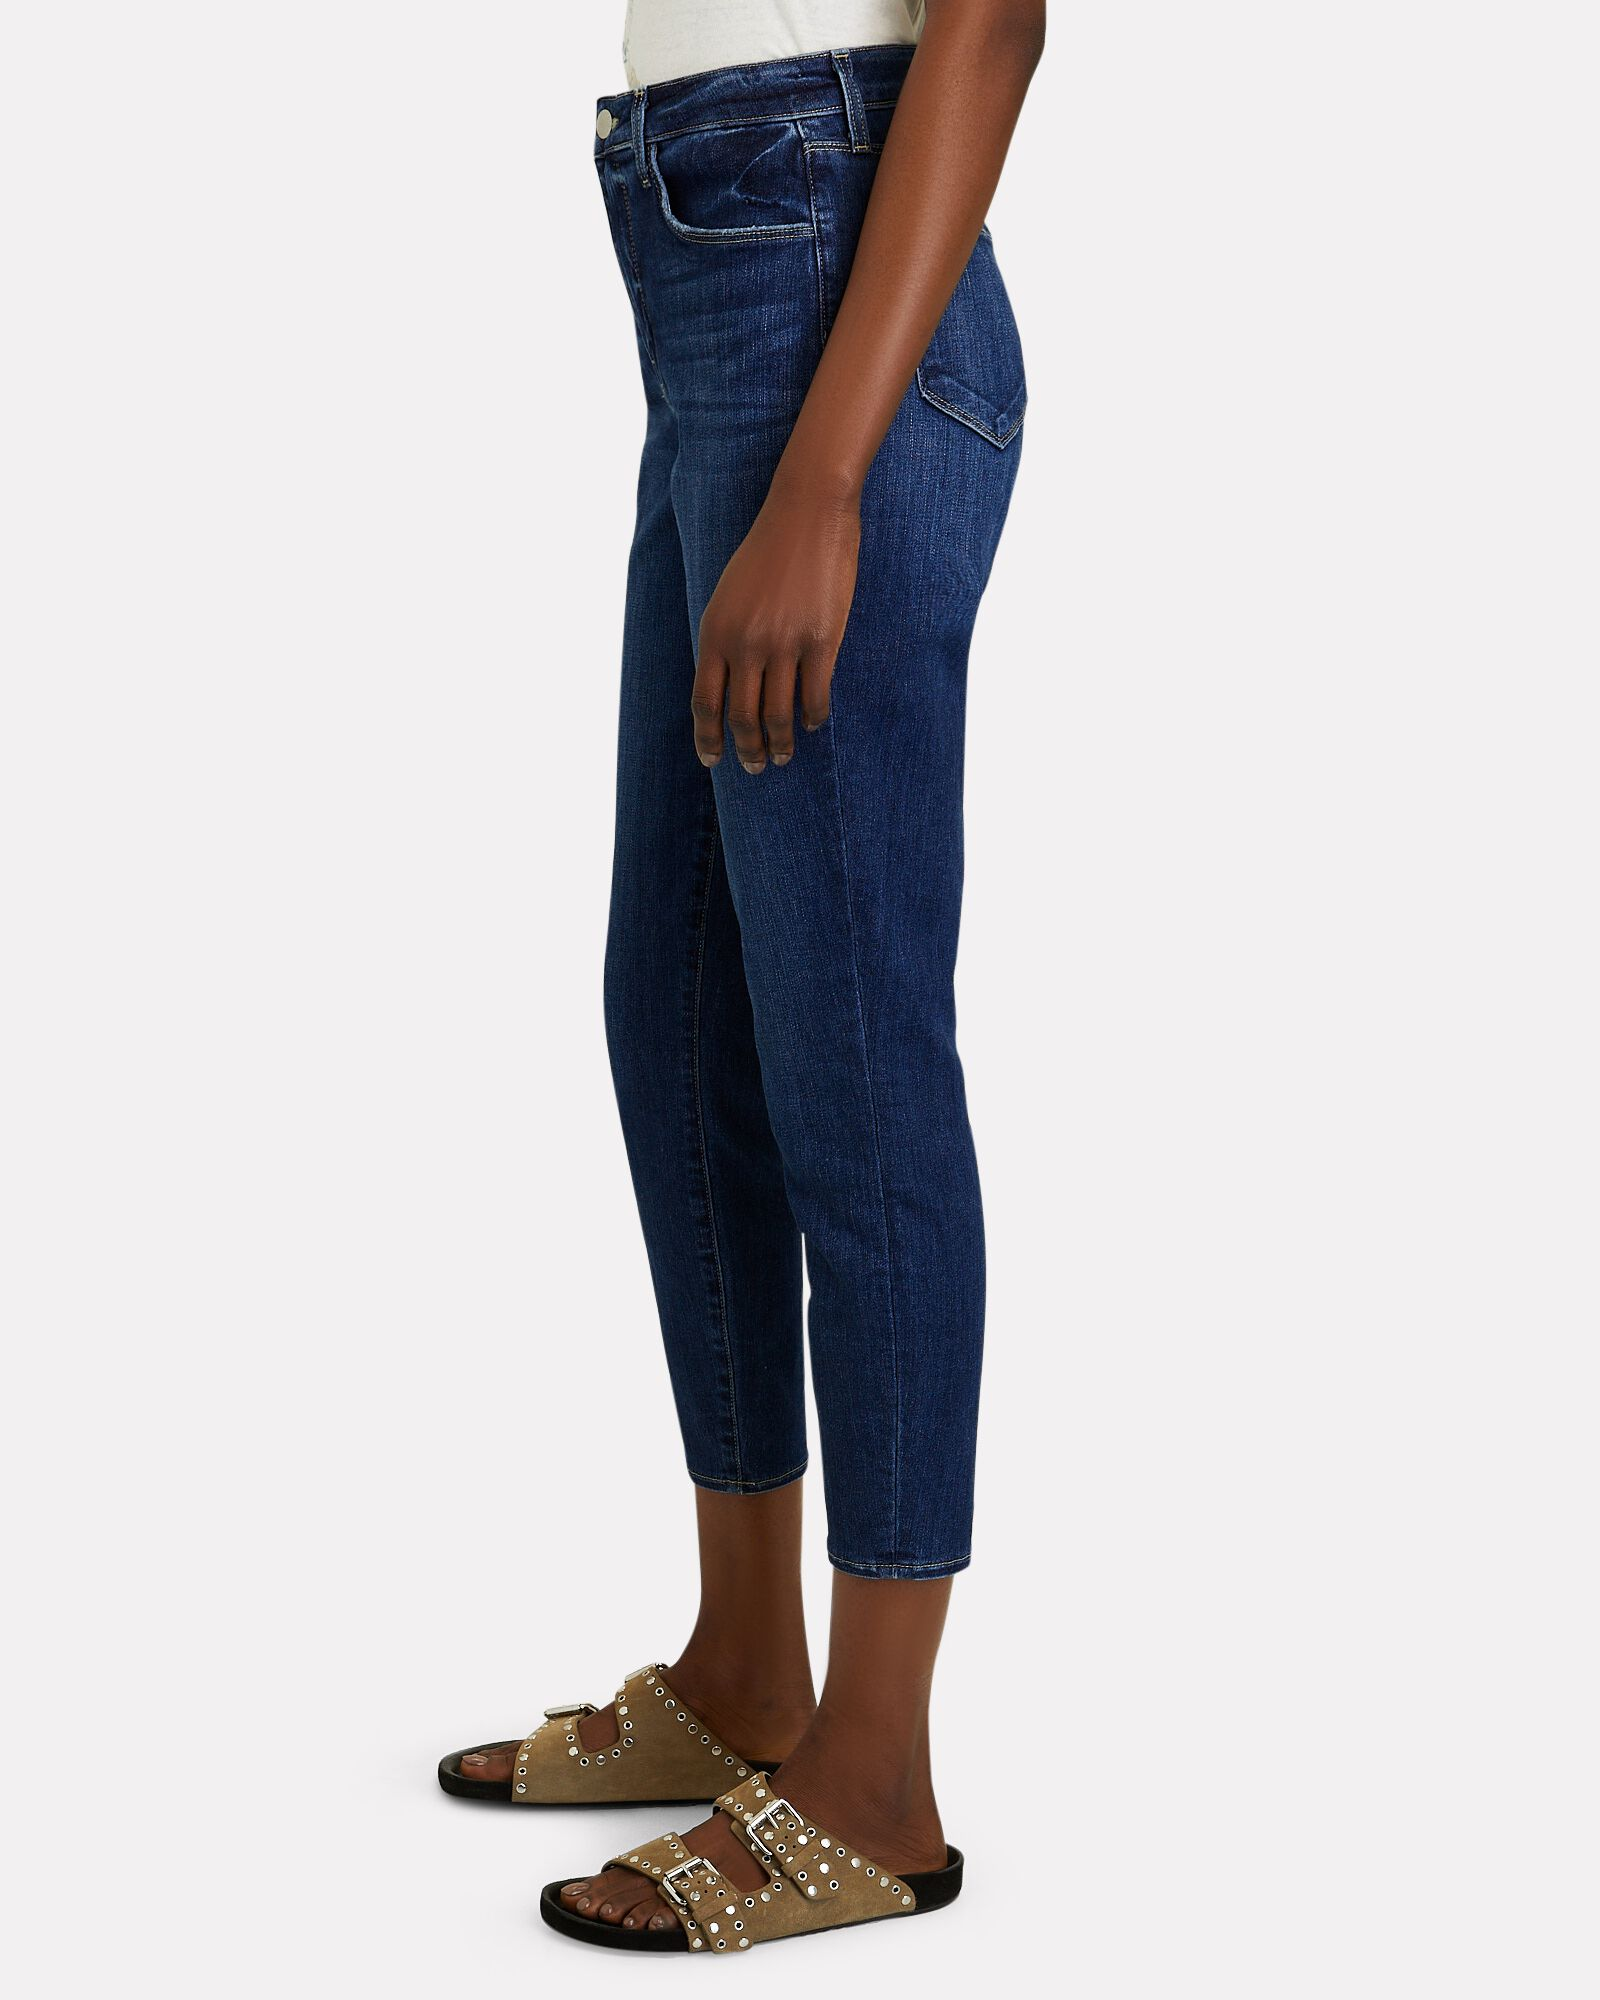 Margot High-Rise Skinny Jeans, LAREDO, hi-res